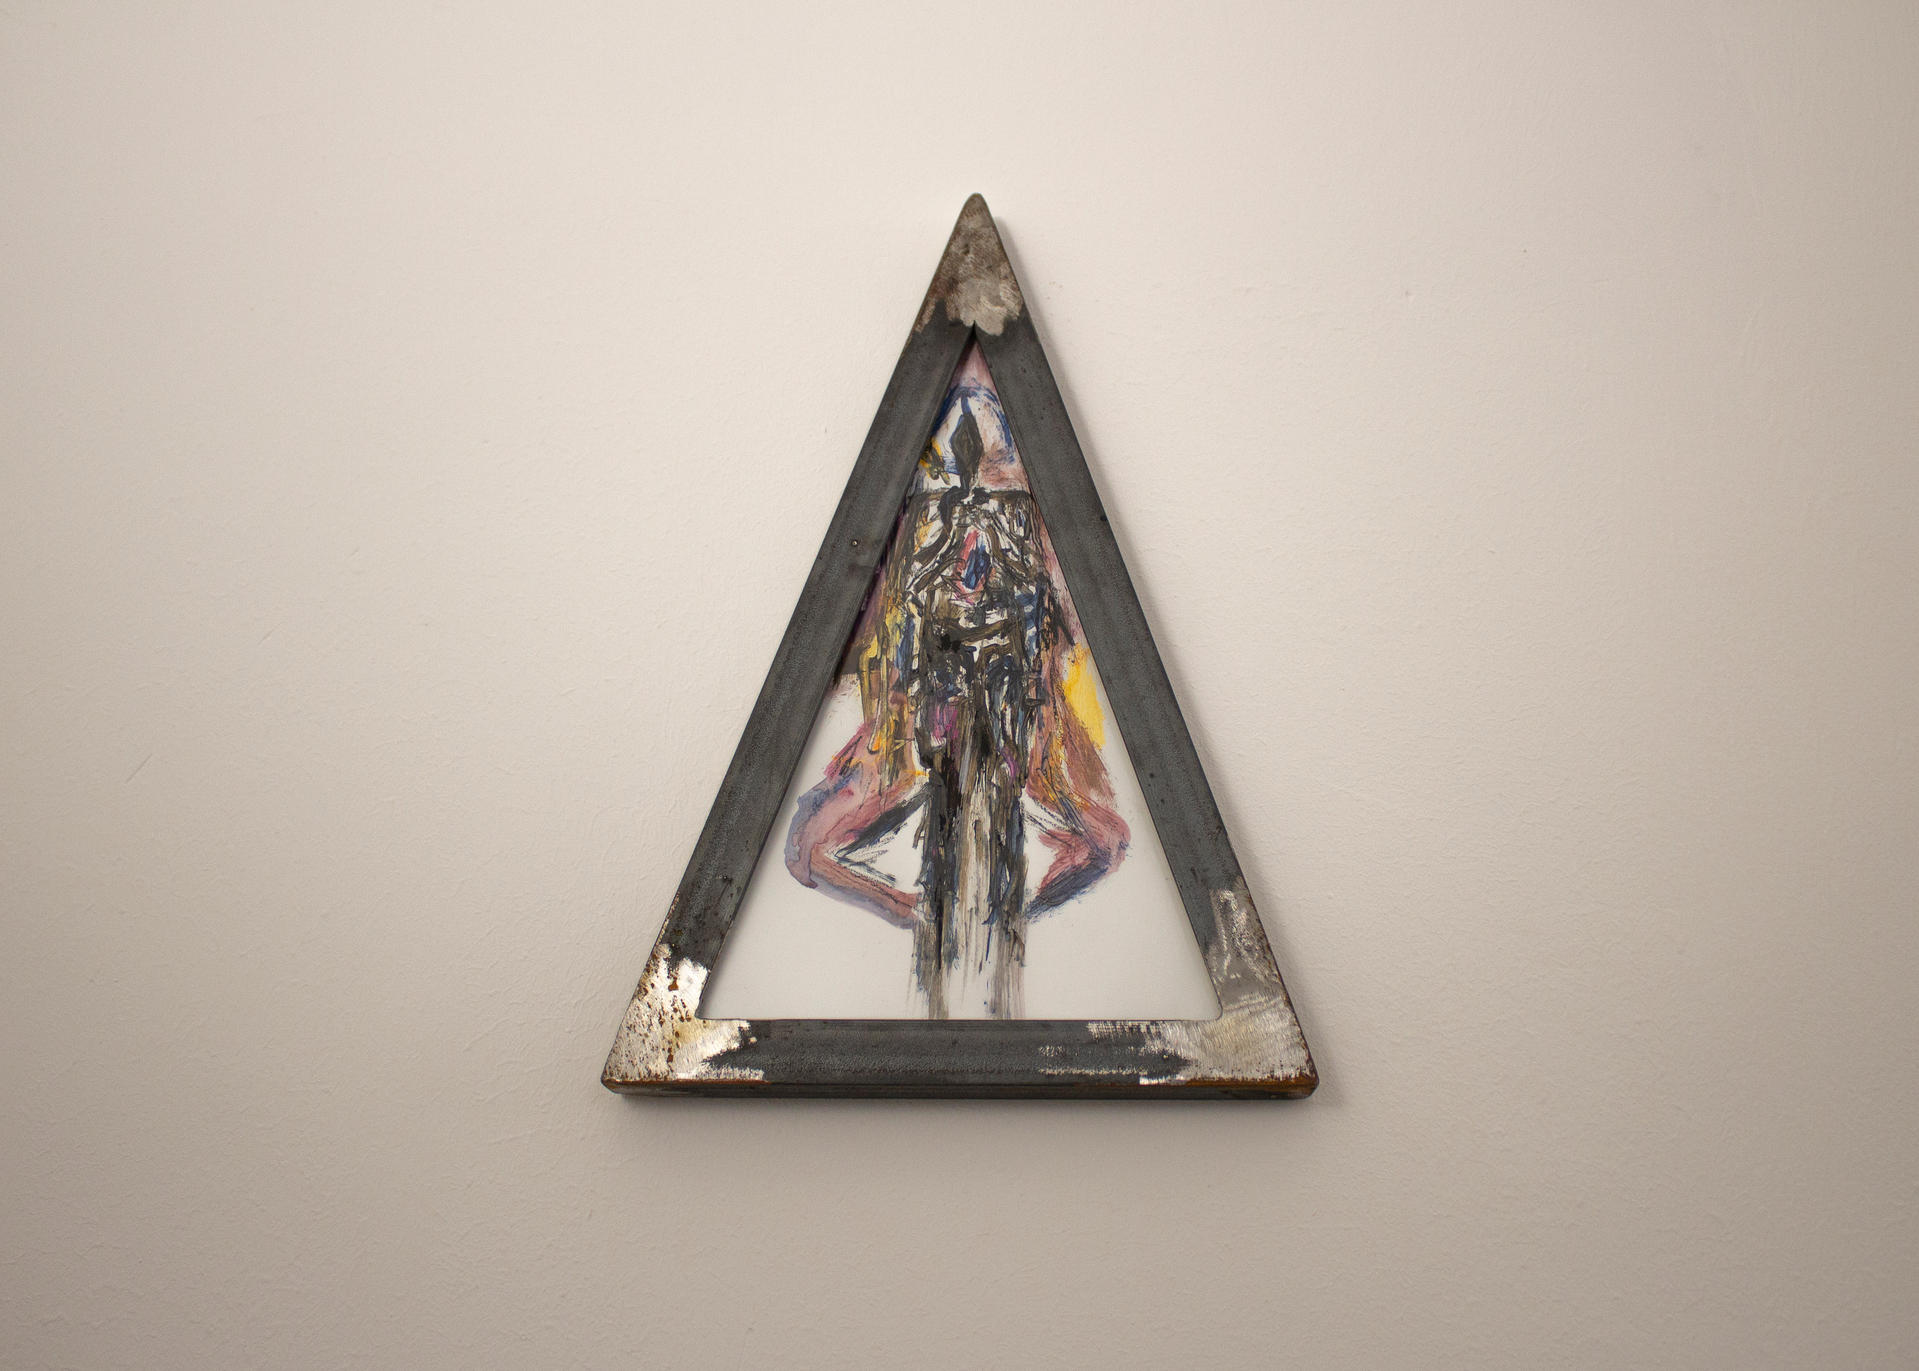 Alessandro Giannì, in the triangle, 2020, oil and acrylic on paper and iron frame